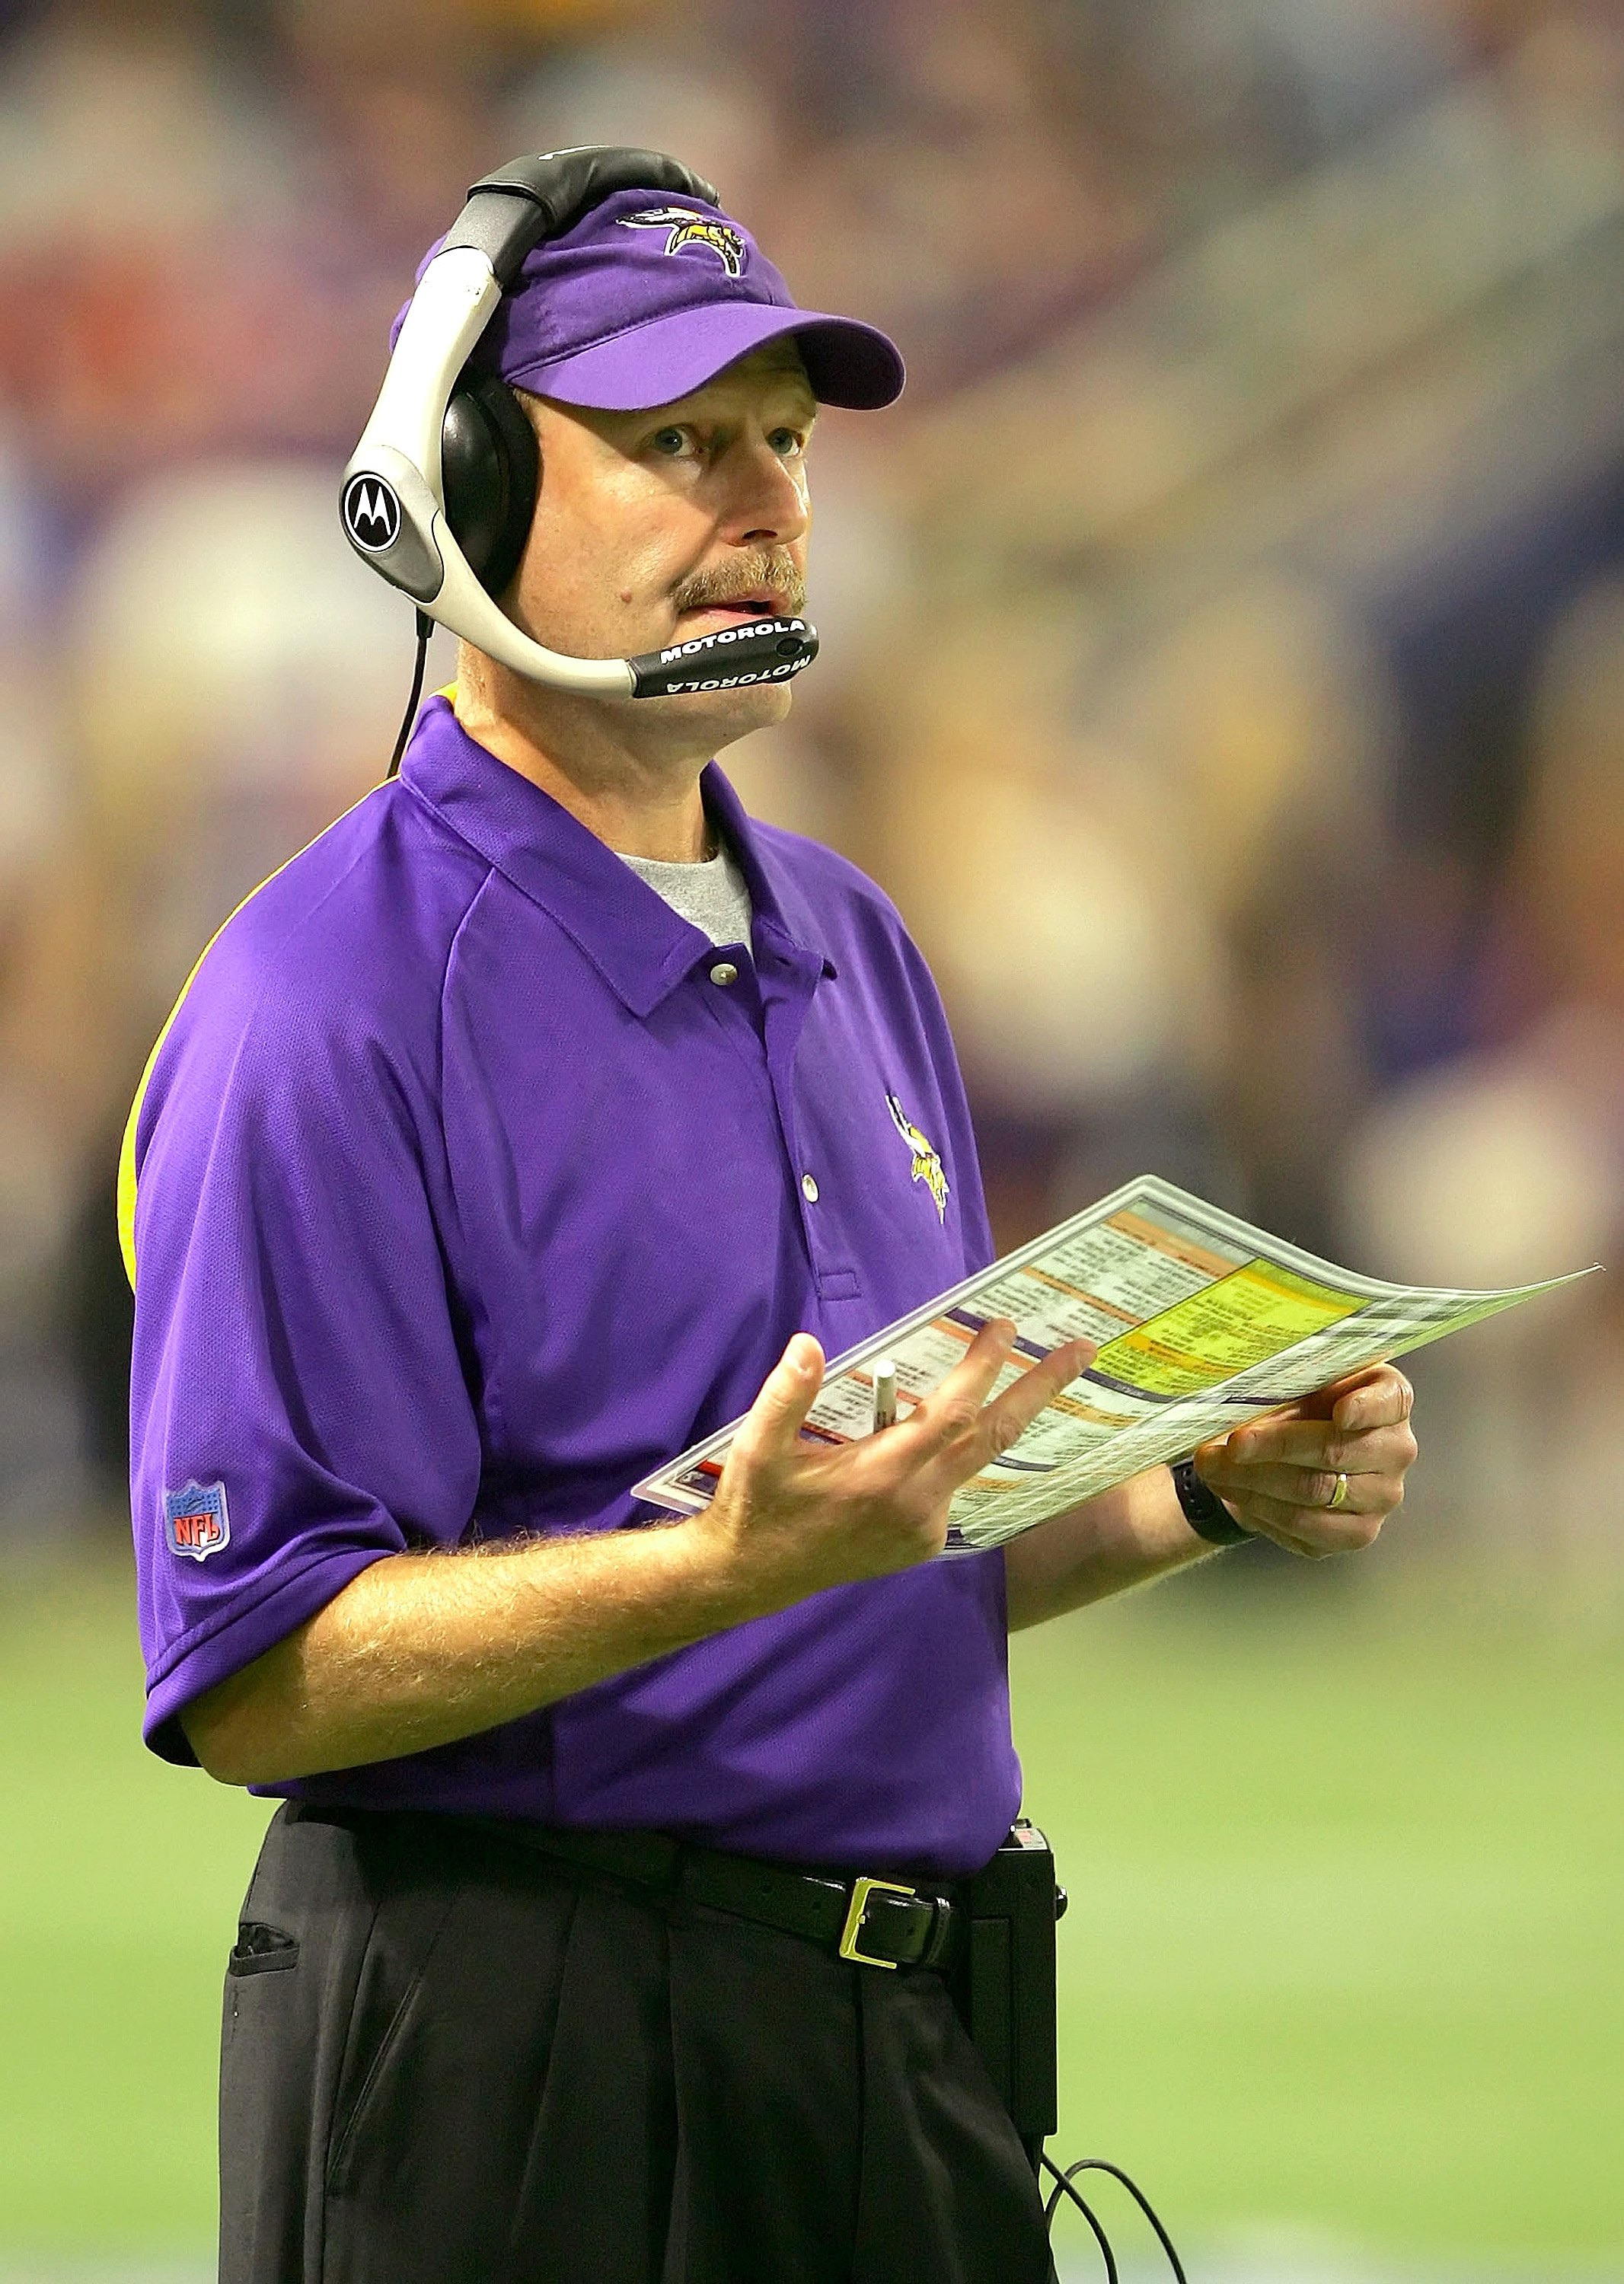 MINNEAPOLIS, MN - SEPTEMBER 17: Head coach Brad Childress of the Minnesota Vikings looks on from the sideline during the game against the Carolina Panthers on September 17, 2006 at Hubert H. Hunphrey Metrodome in Minneapolis, Minnesota. (Photo by Lisa Blu